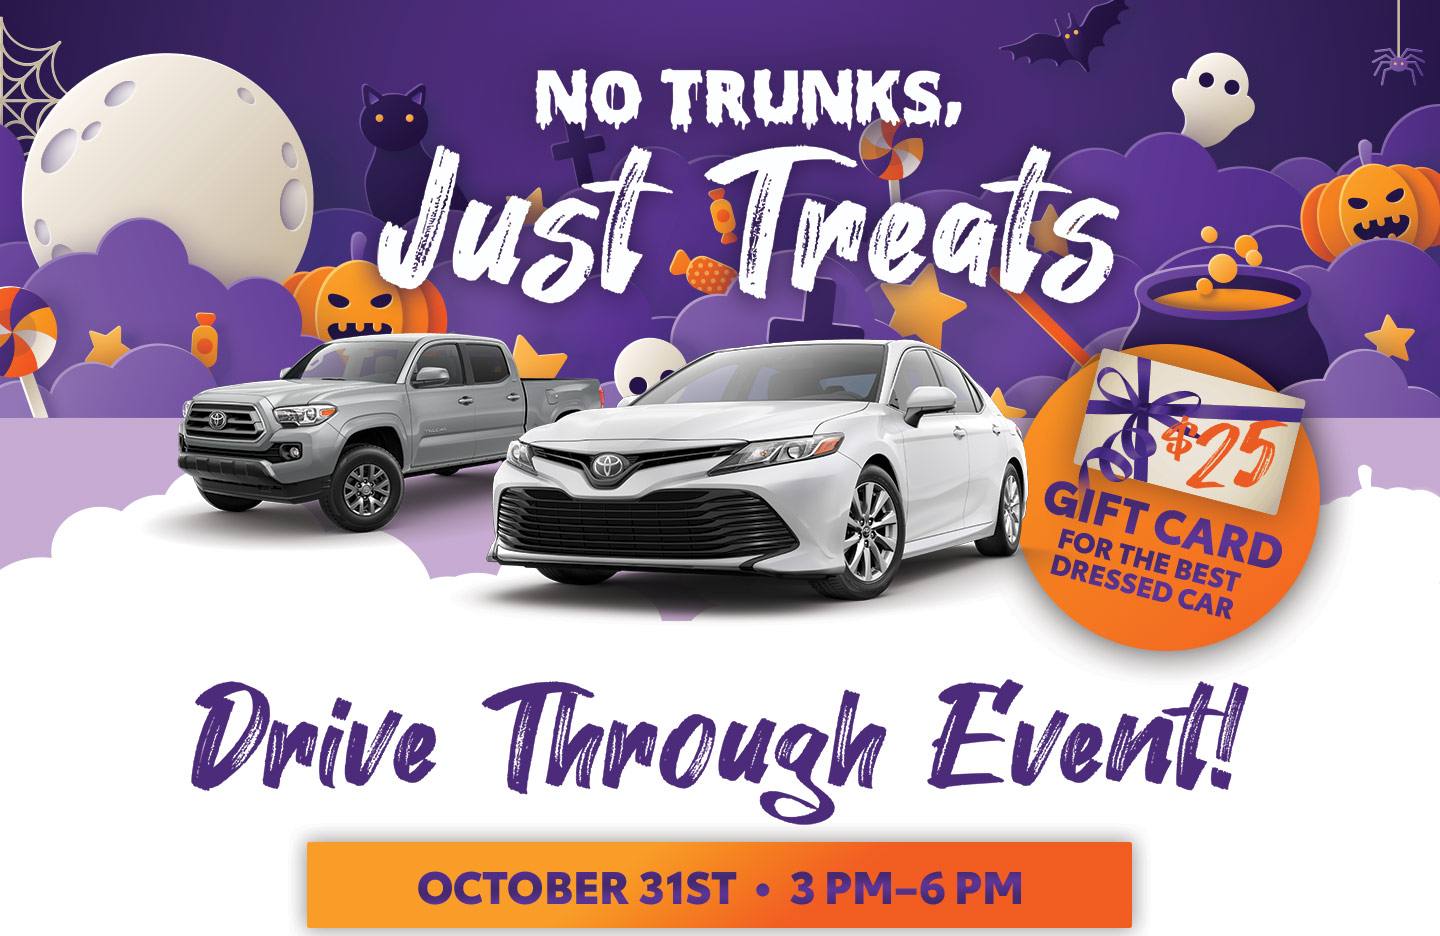 Drive Through Event!